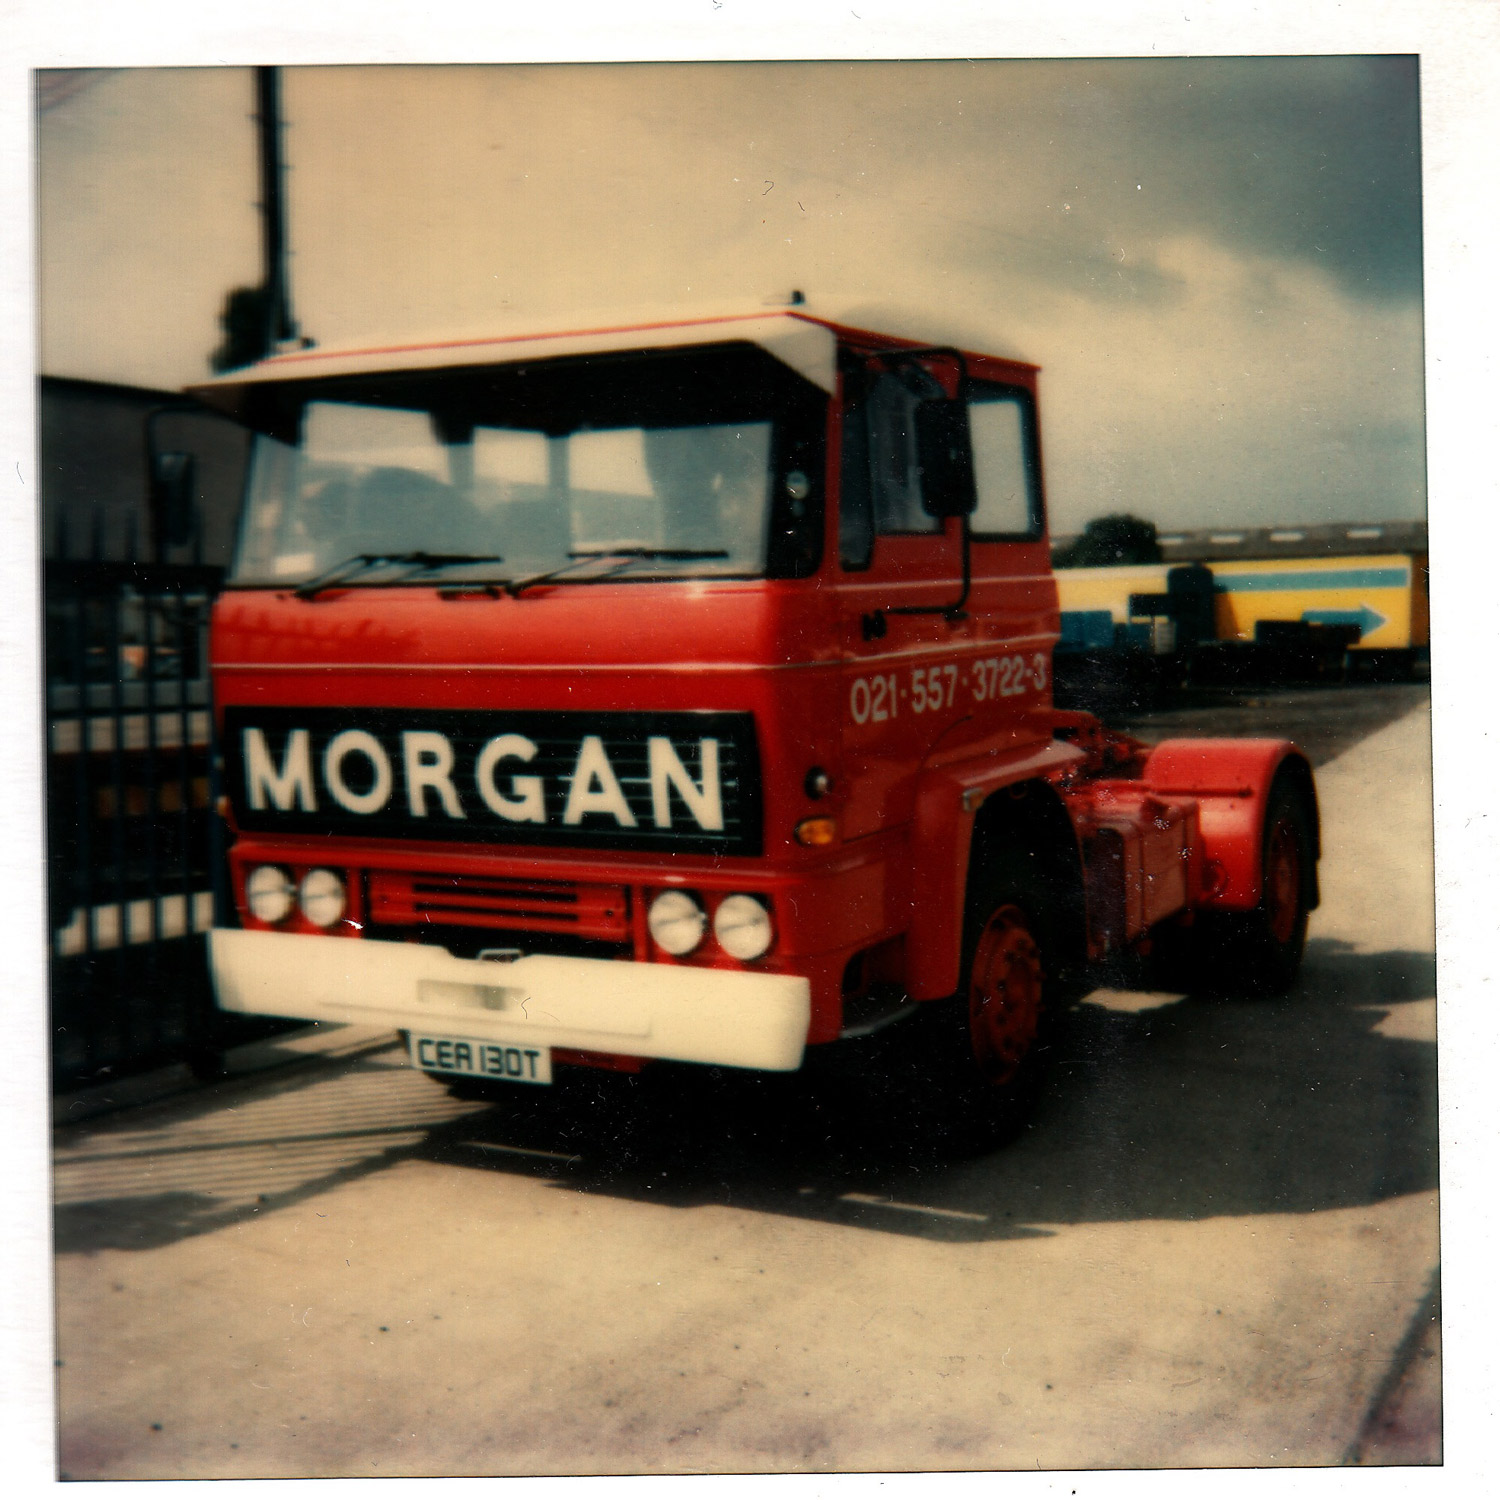 "Keltruck's David Morgan writes: ""This DAF was sold new by Westmid to my family business, Morgan Transport of Tipton. Prior to this Chris Kelly had sold mom & dad a new Atkinson Borderer tractor unit with a Gardner 8LXB 240 engine."